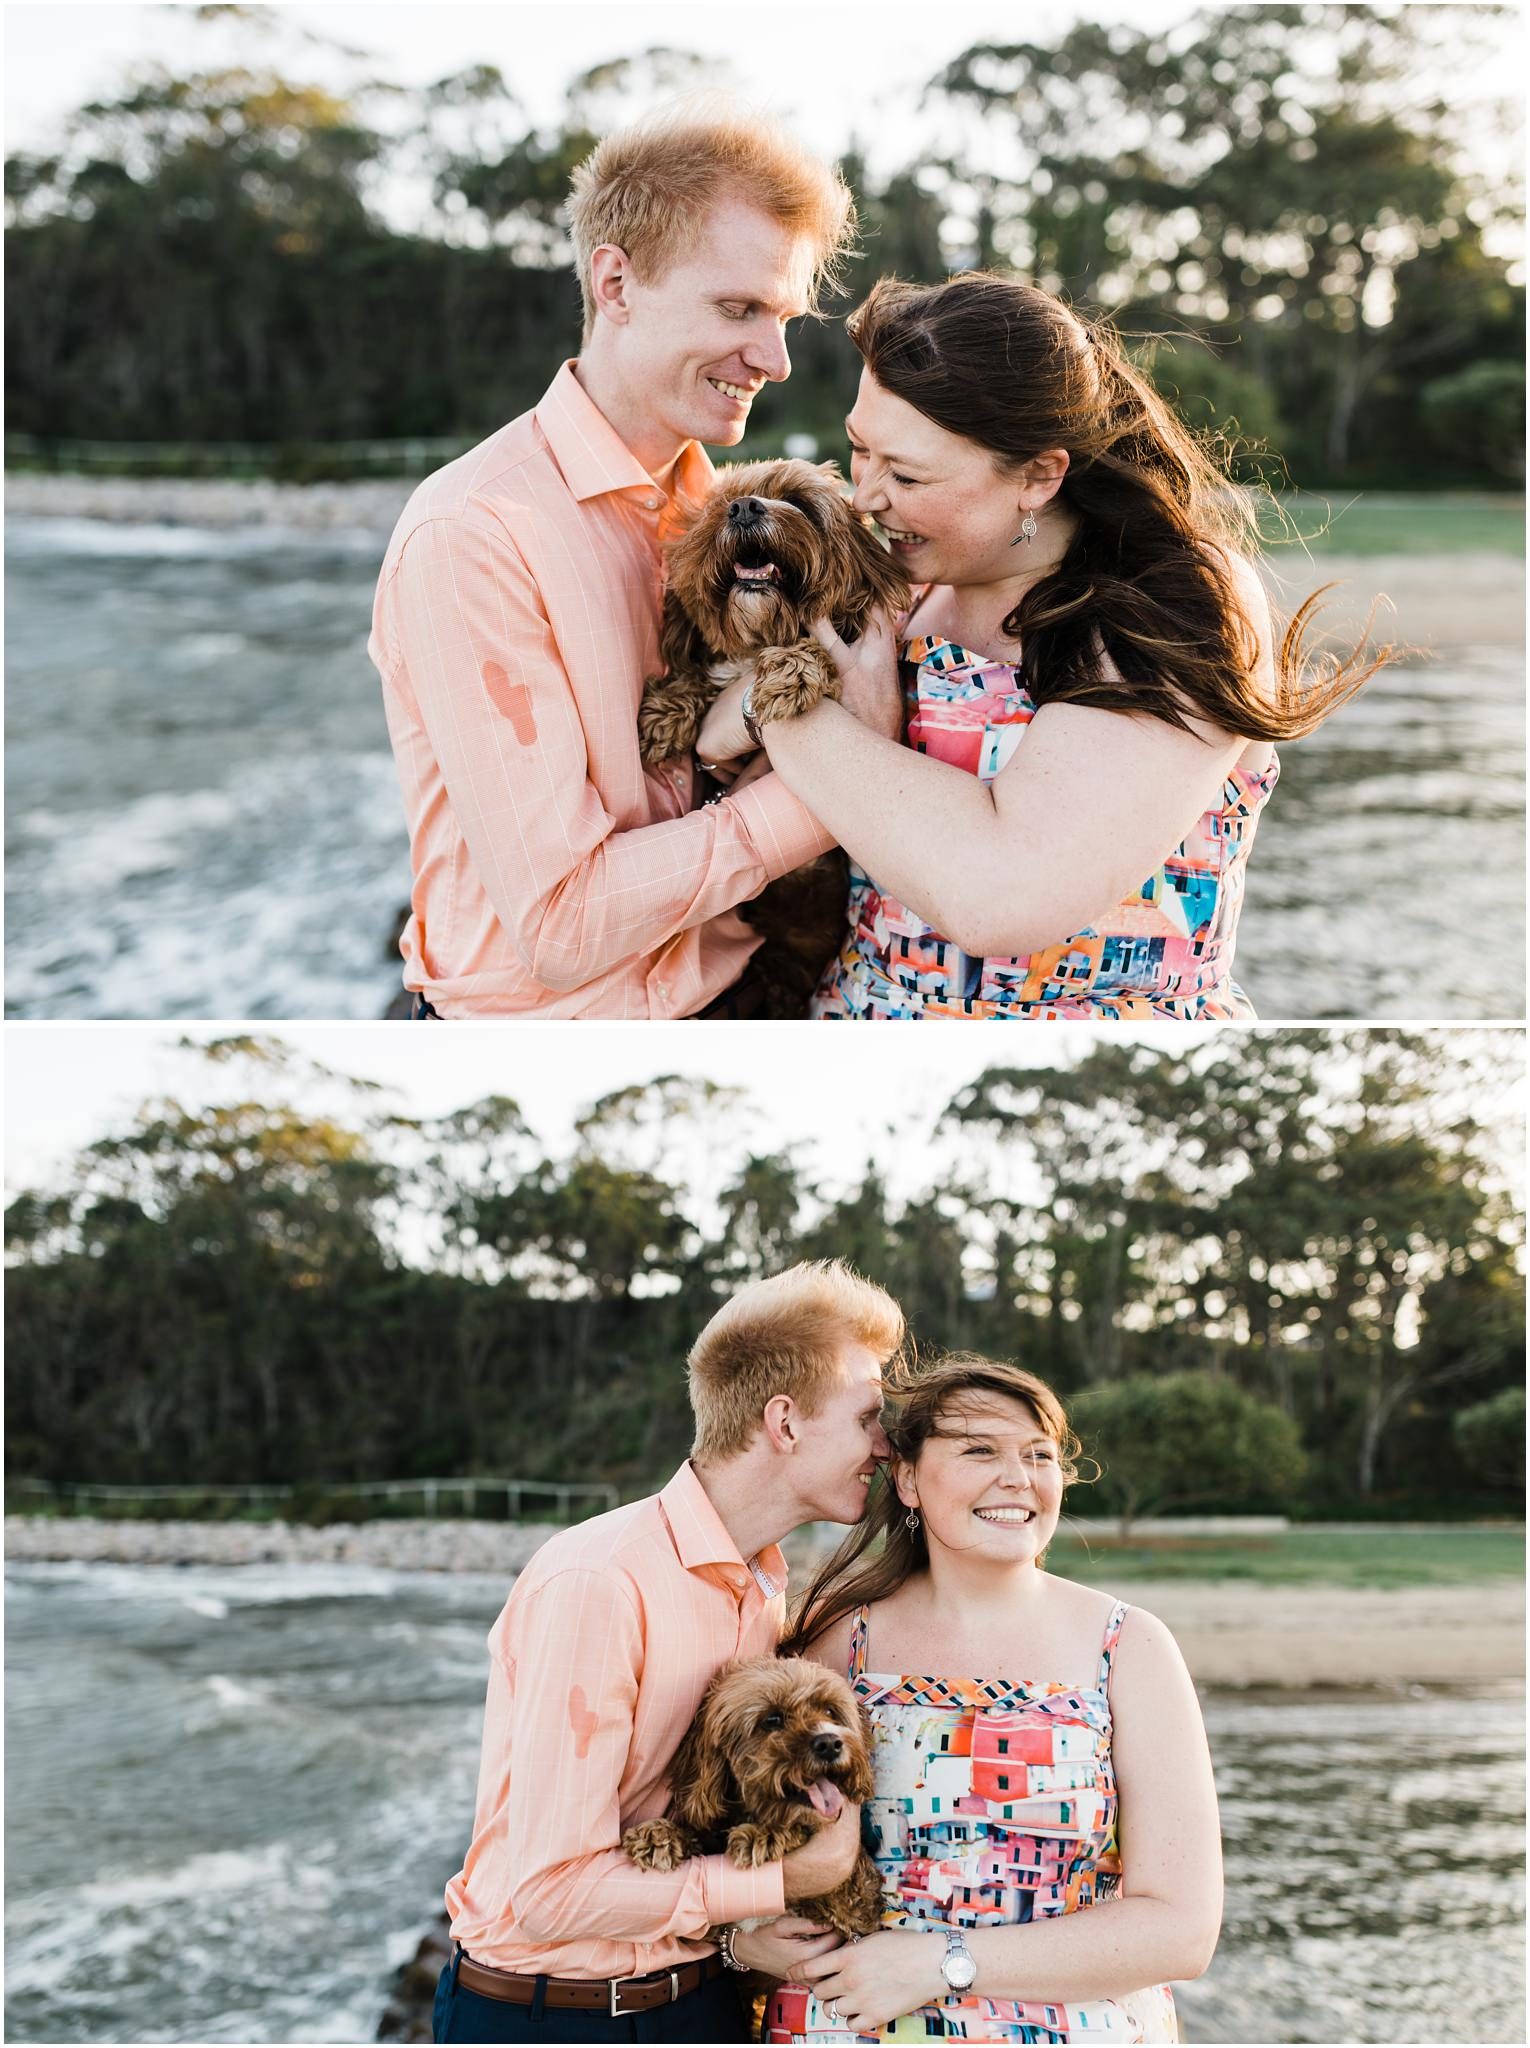 brisbane-brighton-sandgate-engagement-pet-photography-cute-doggo28.jpg